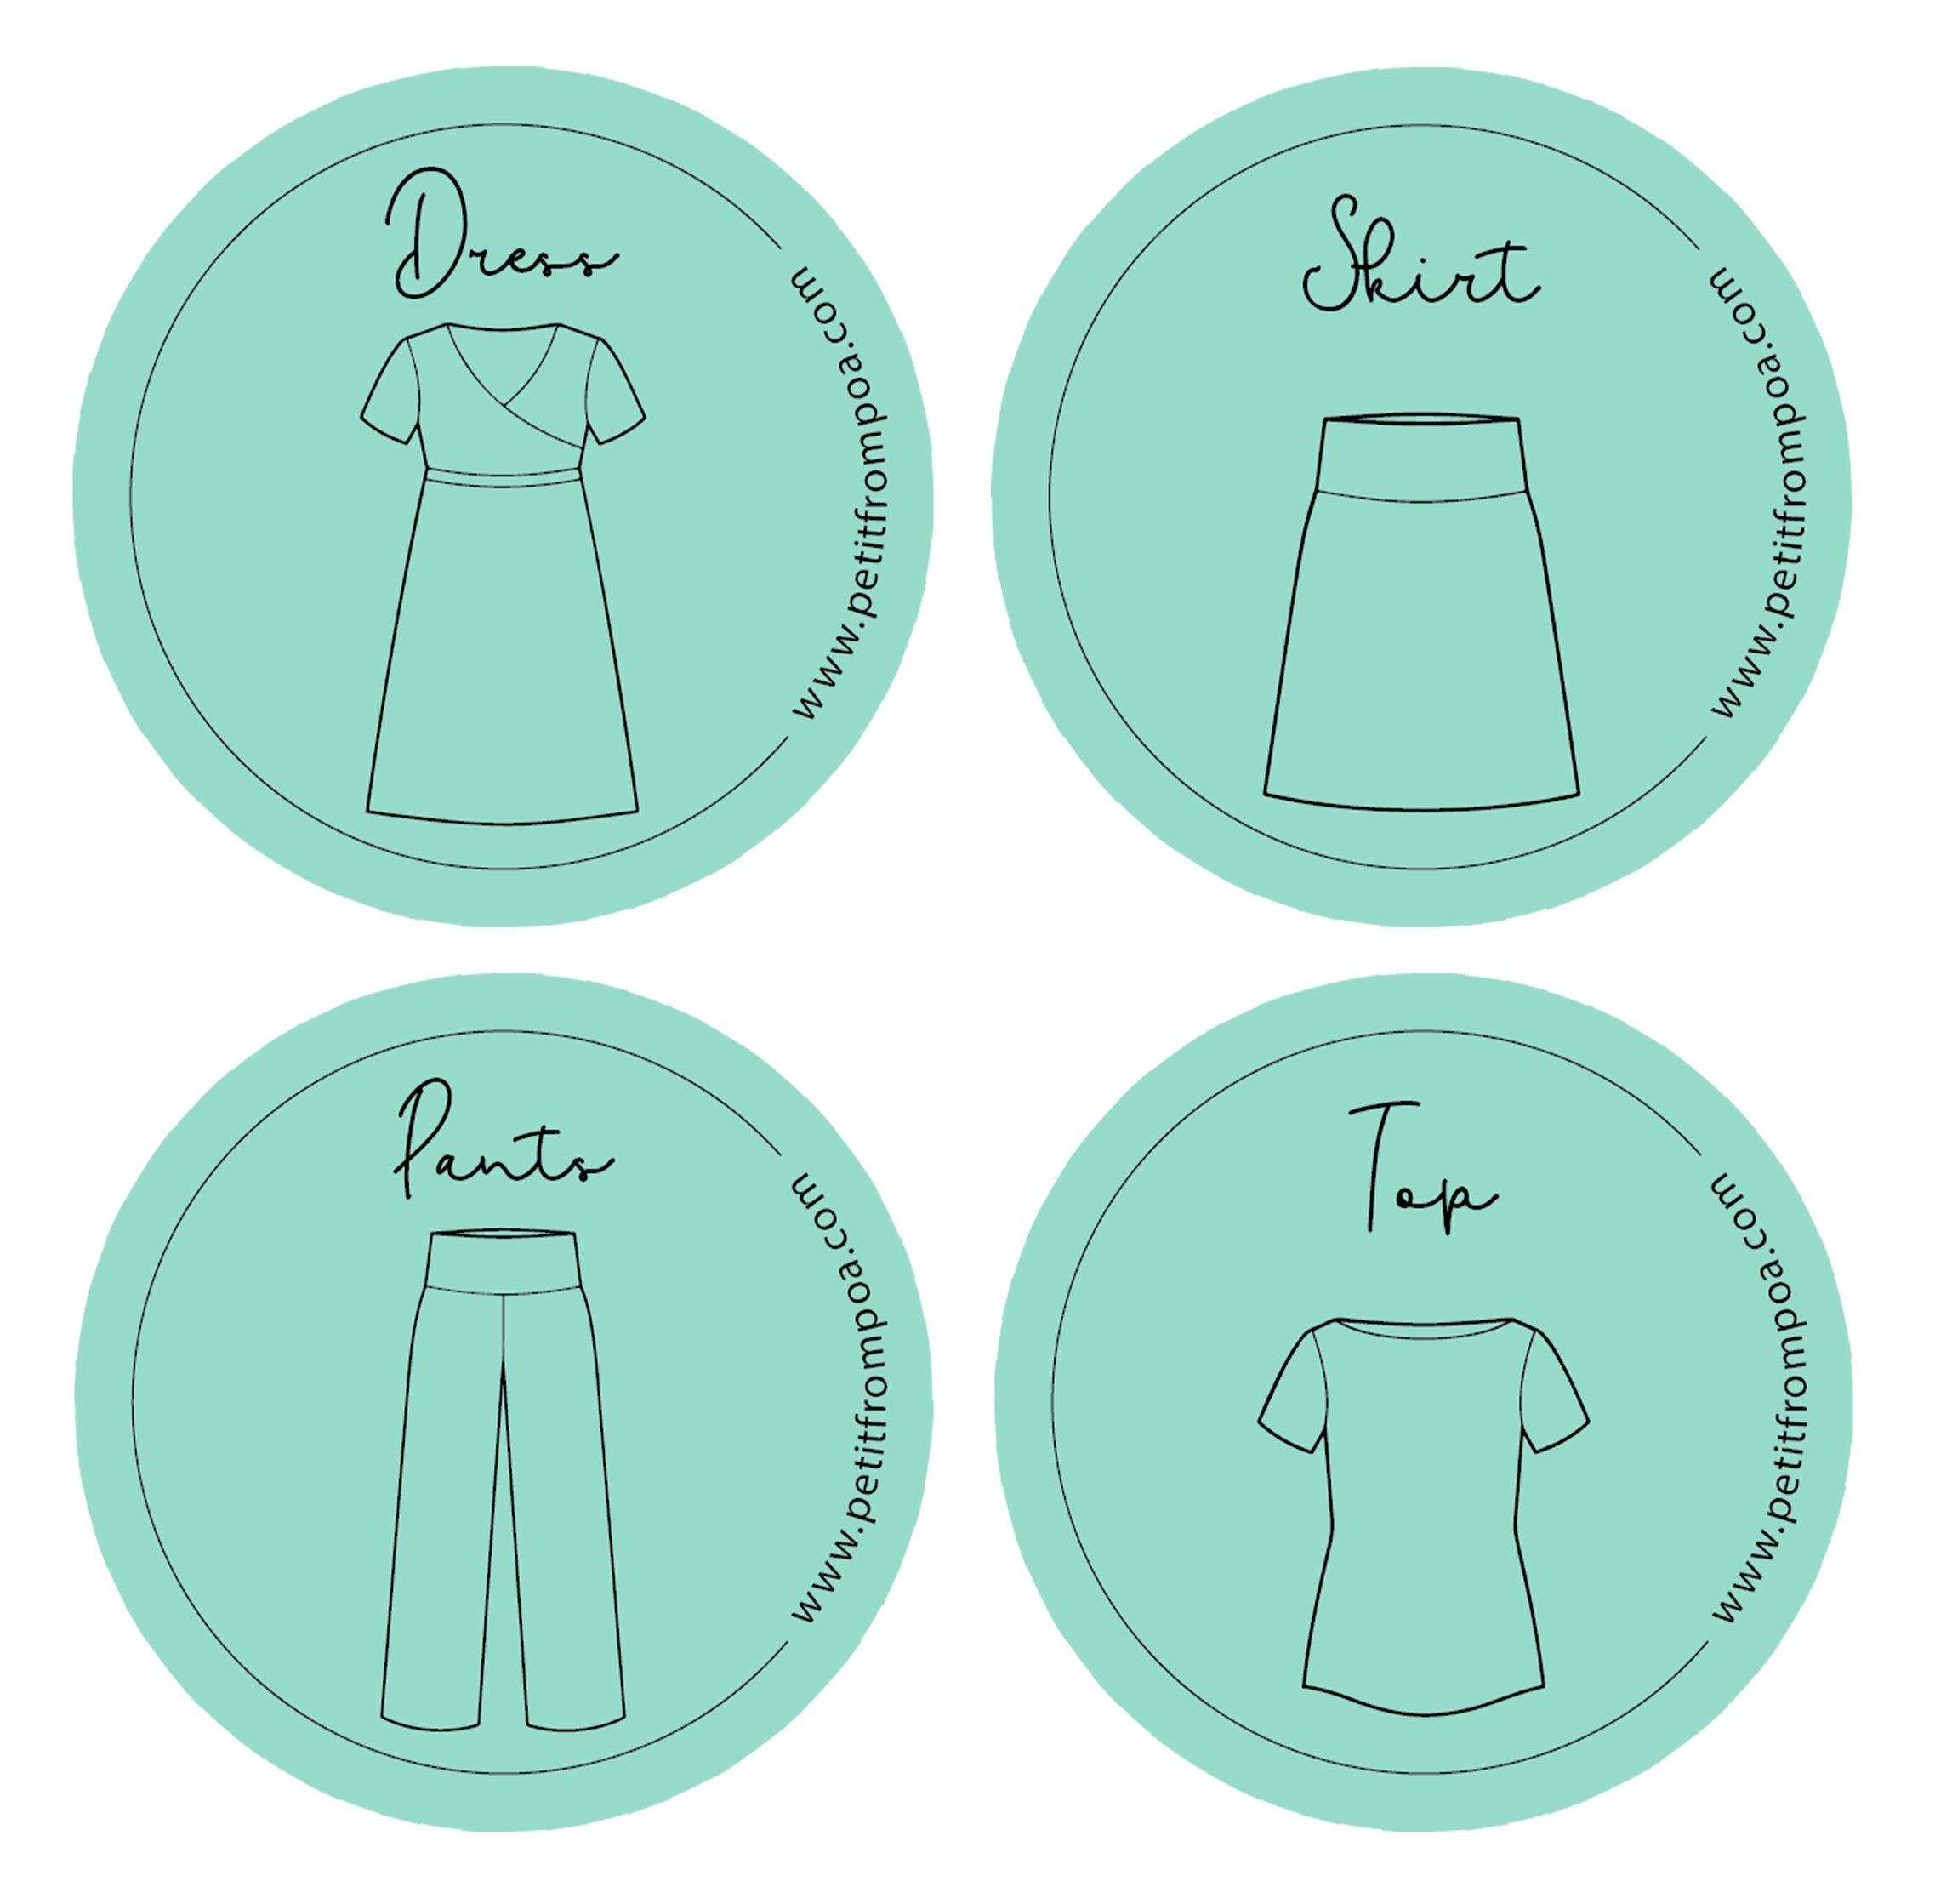 Round Petit from Poa line art logos for Dress, Skirt, Pants and Top, in Petit green with wwwpetitfrompoa.com.